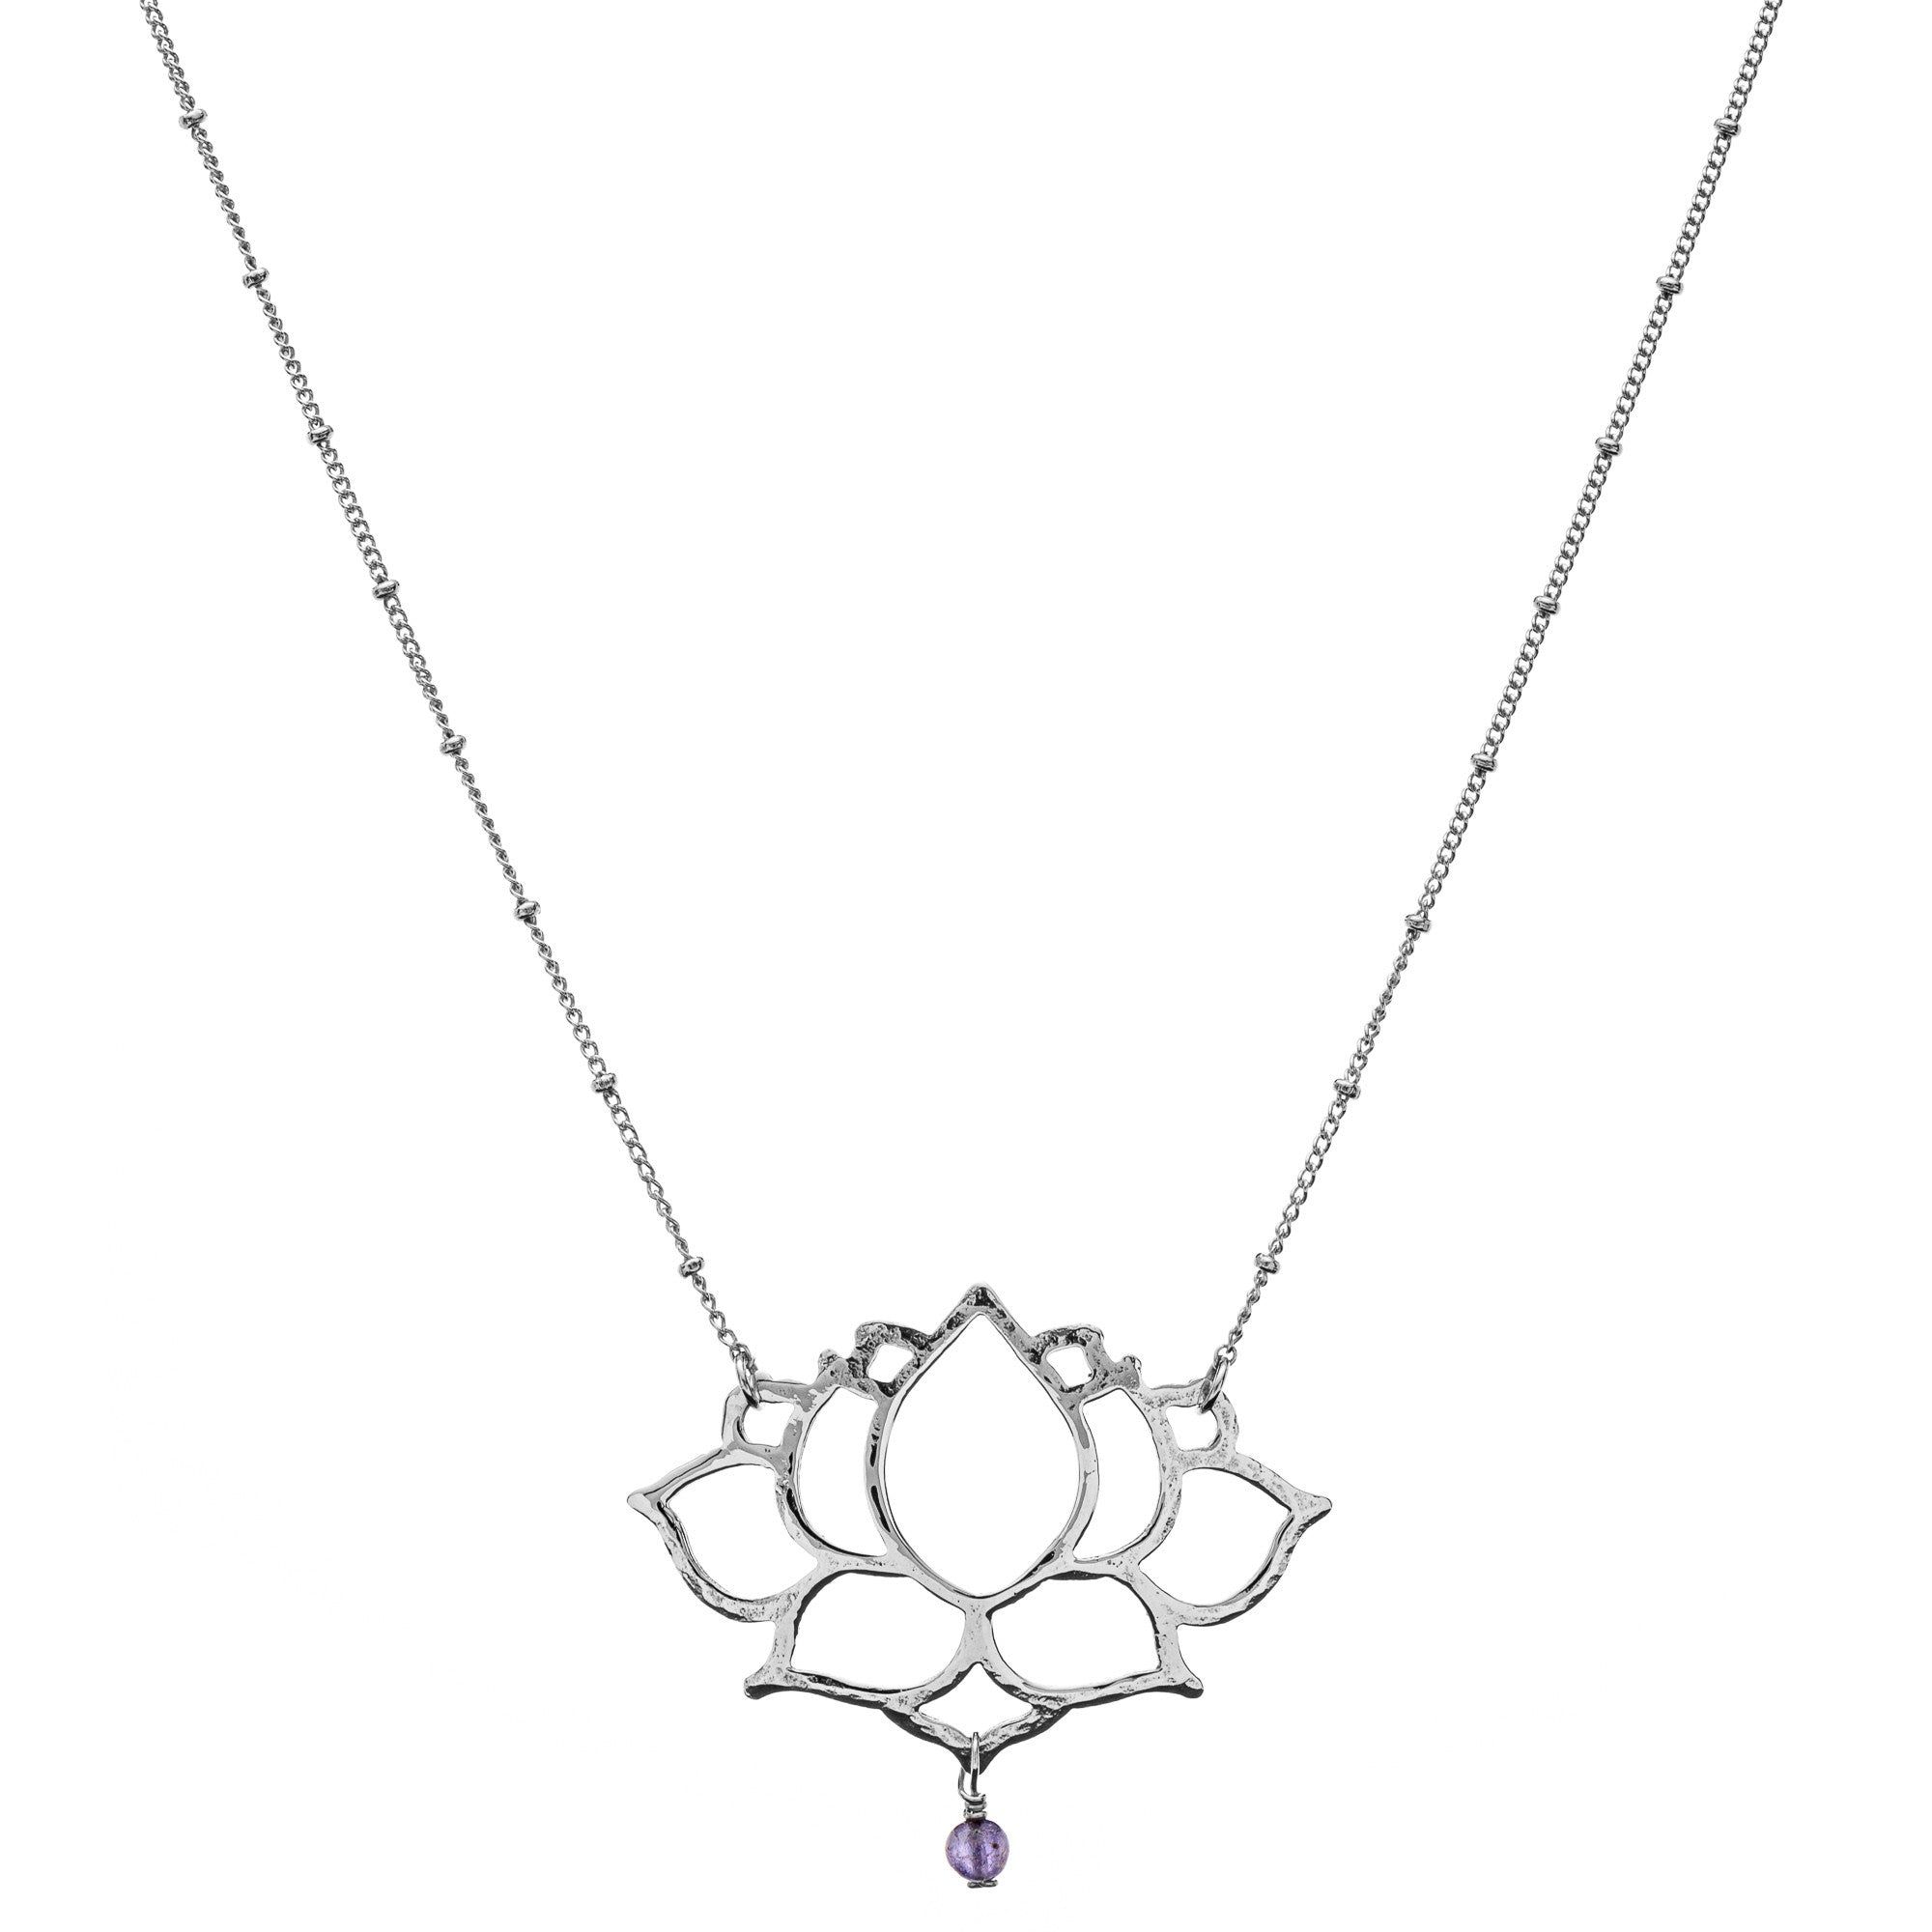 sterling in necklace pendant argentium lotus flower silver